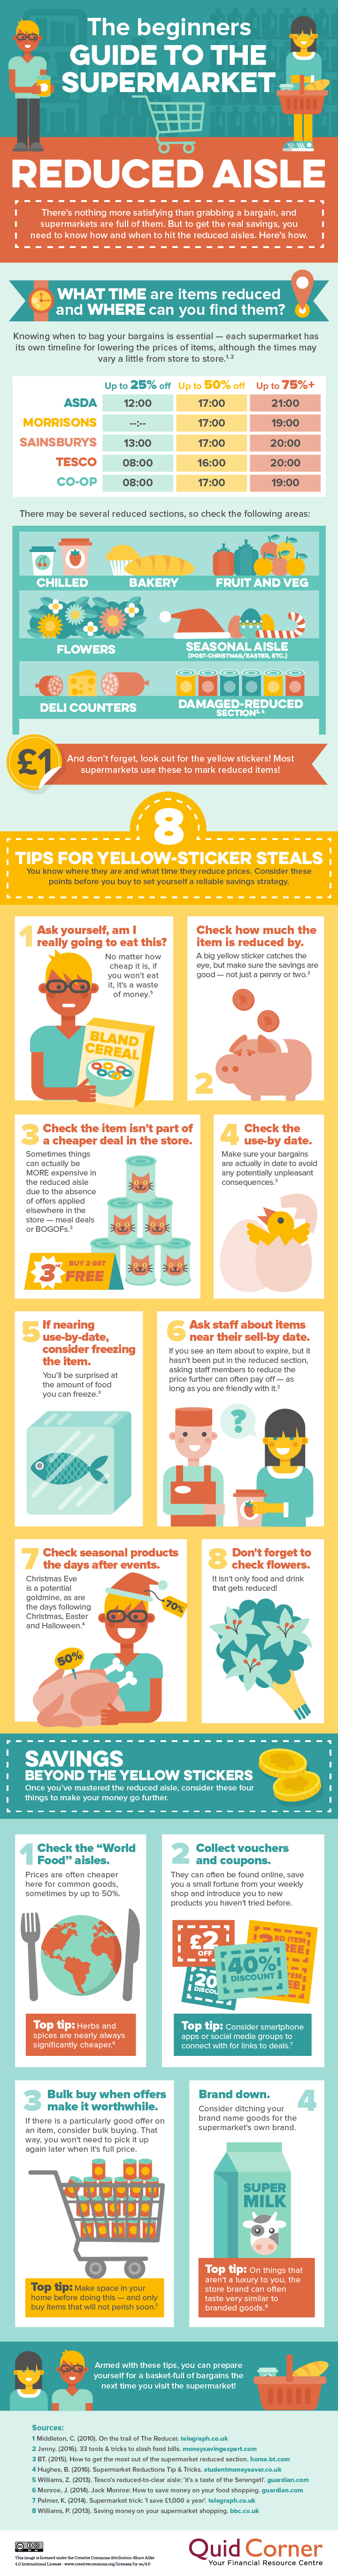 How to Shop in Supermarket Reduced Aisles: A Beginners Guide  - Infographic